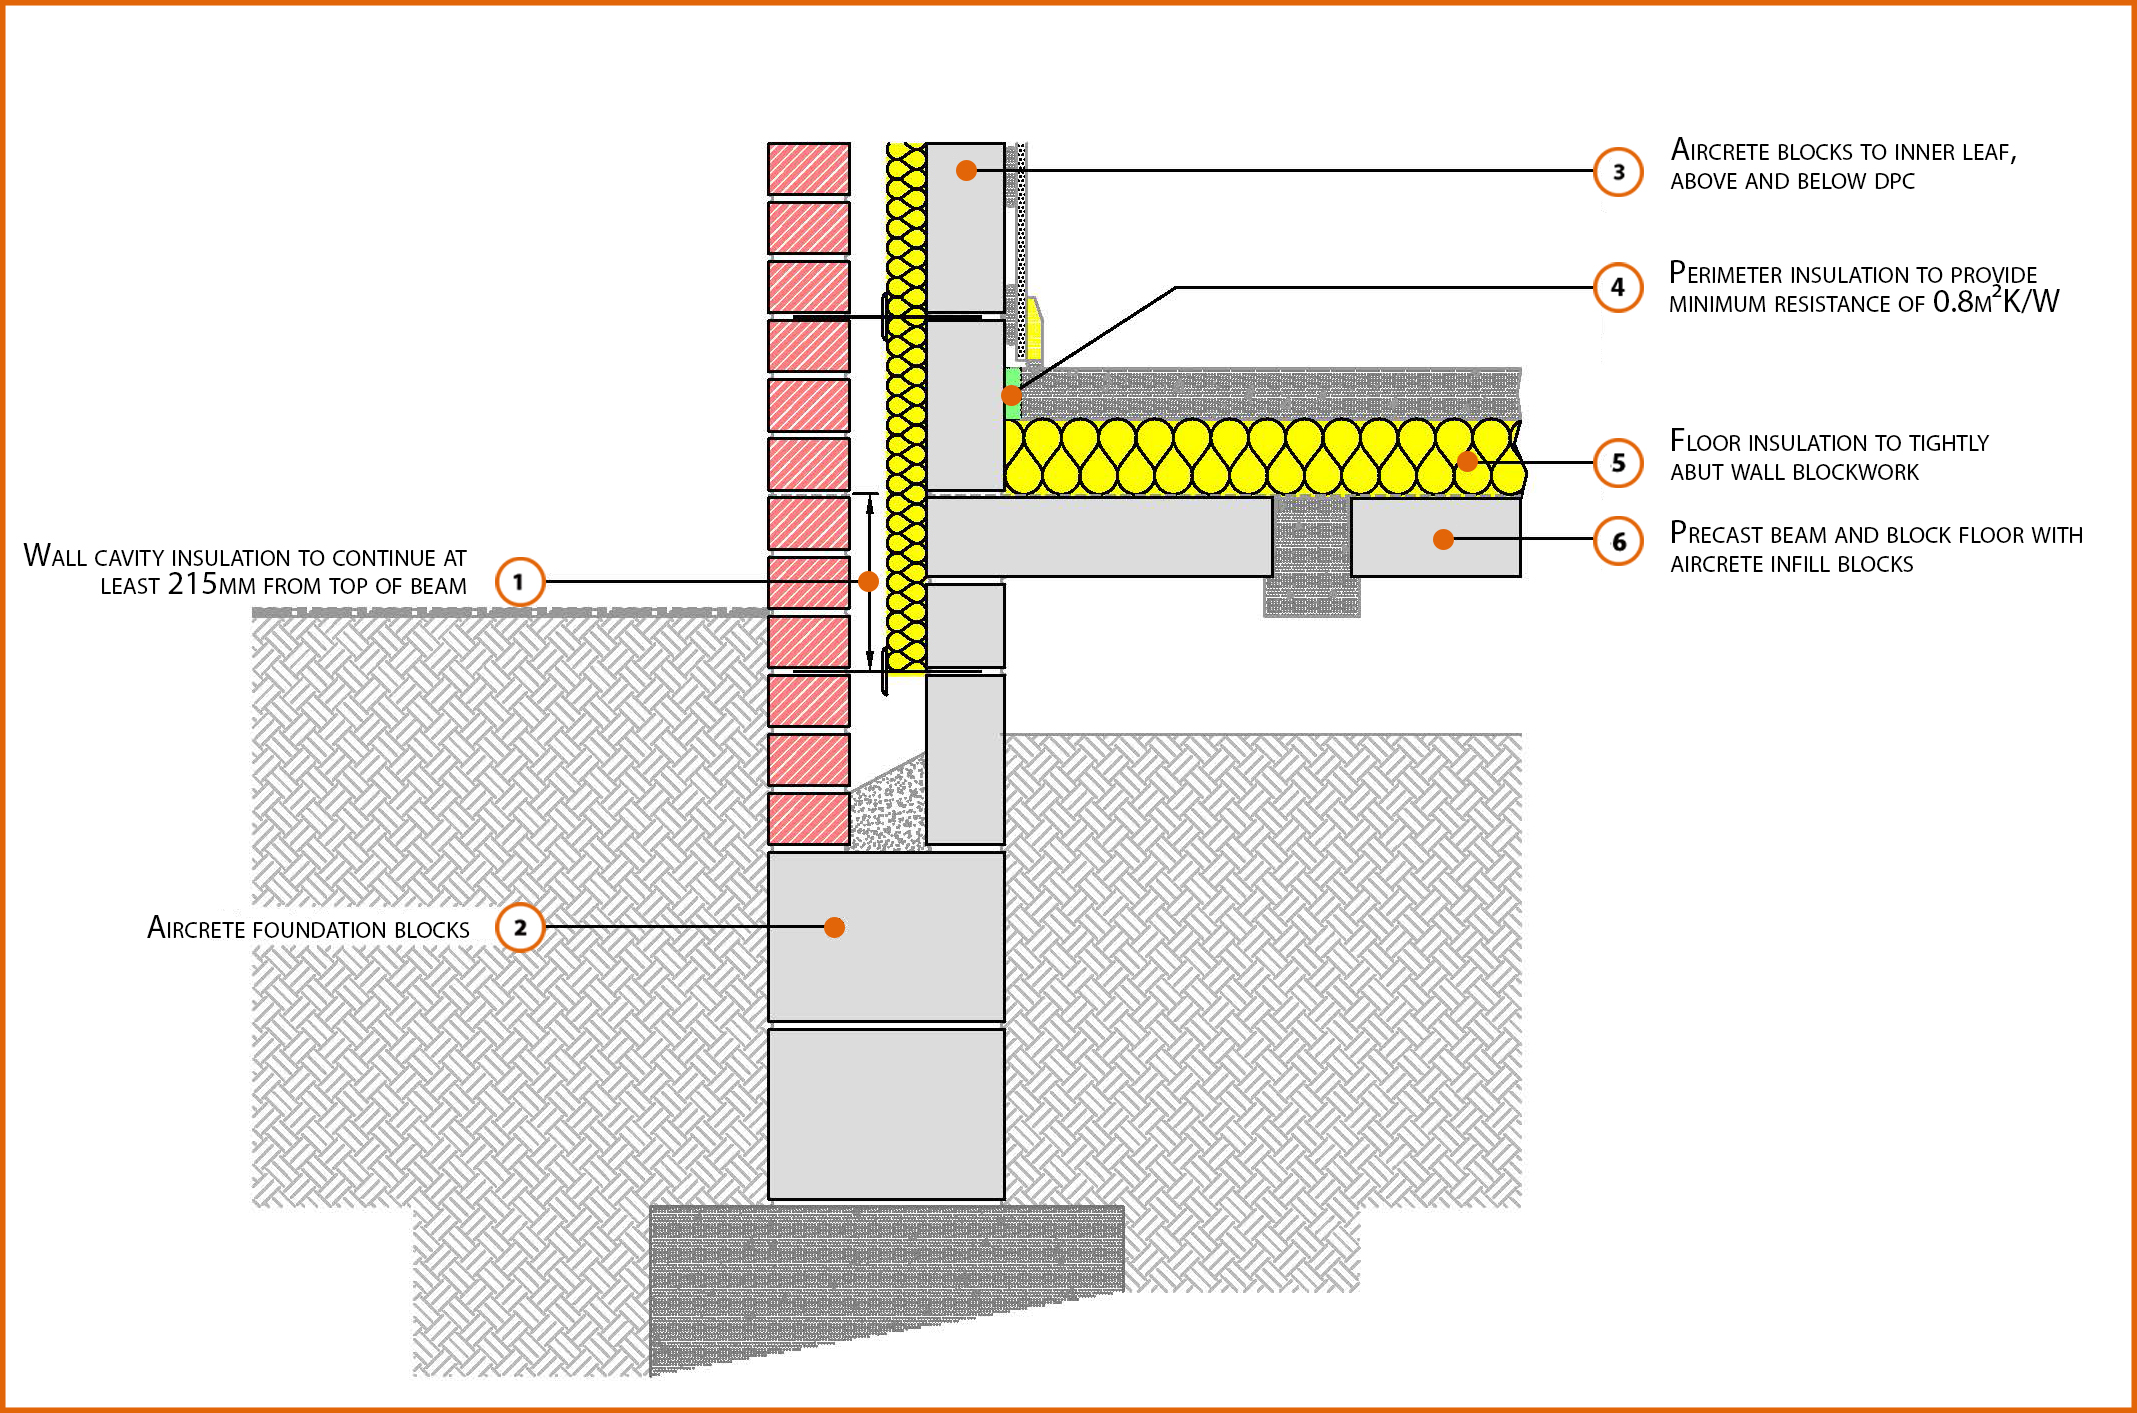 E5mcpf21 Suspended Beam And Block Floor Insulation Above